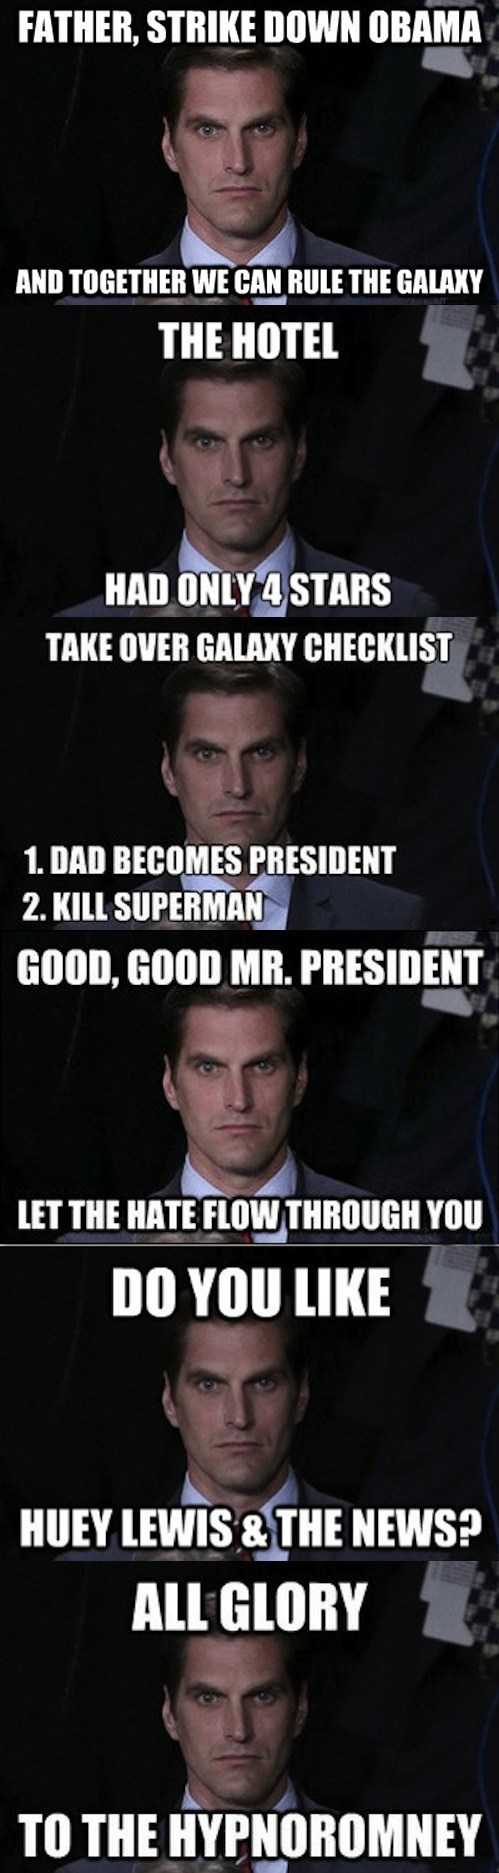 More Menacing Josh Romney